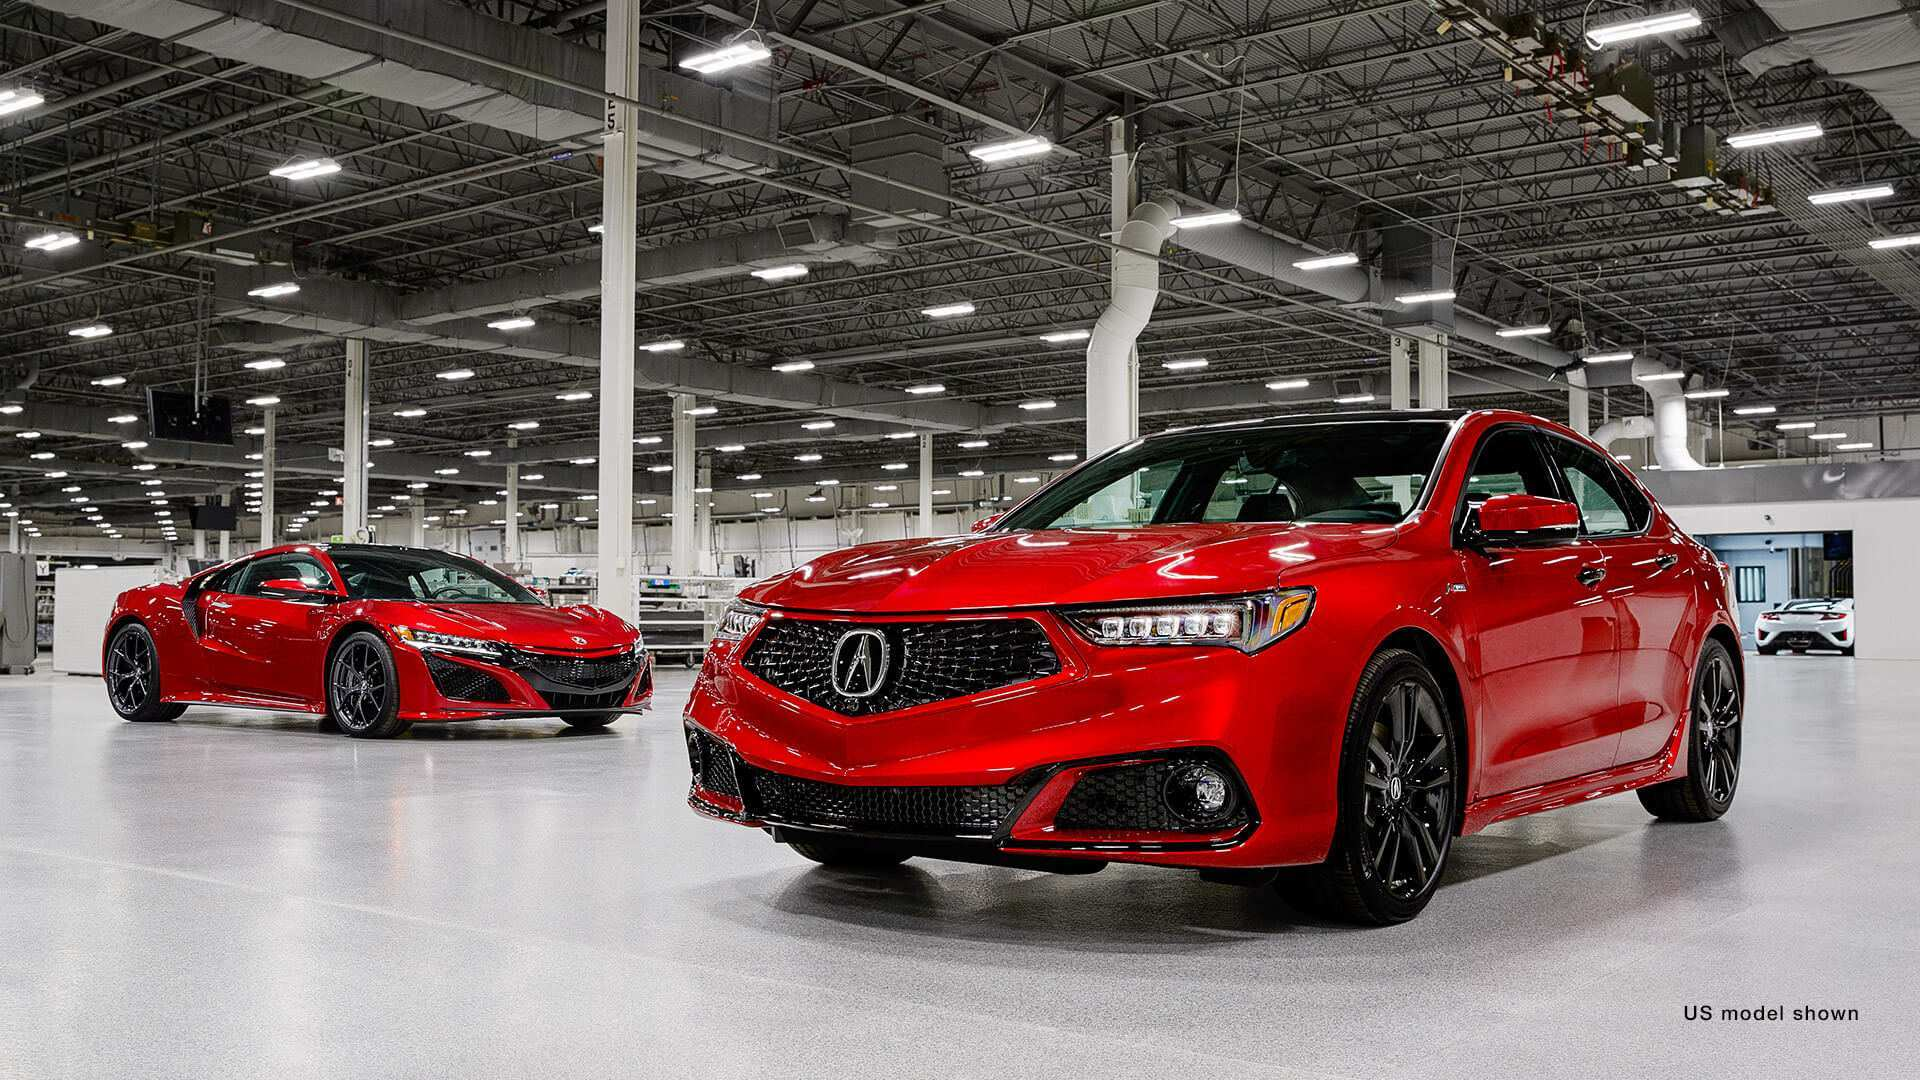 12 New When Does The 2020 Acura Tlx Come Out New Concept with When Does The 2020 Acura Tlx Come Out